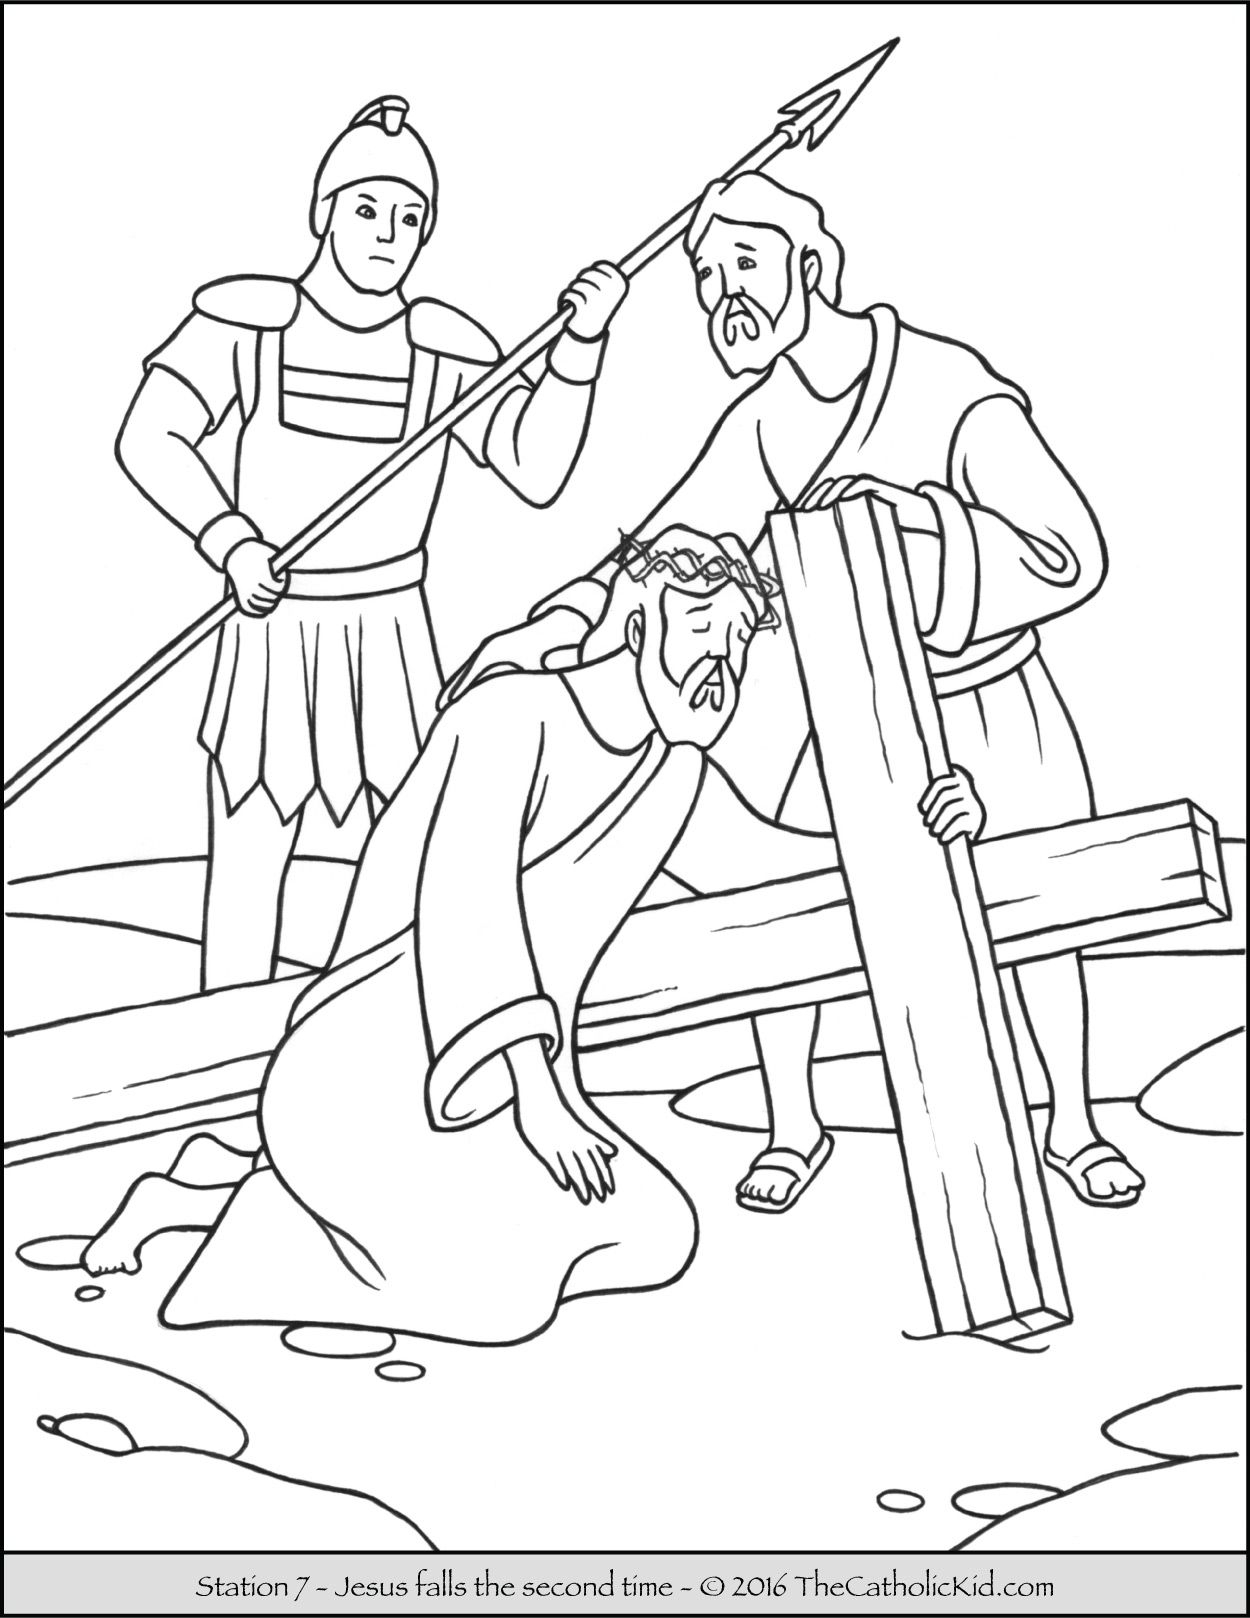 preschool bible story coloring pages Download-Stations of the Cross Coloring Pages 7 Jesus Falls the Second Time 4-j